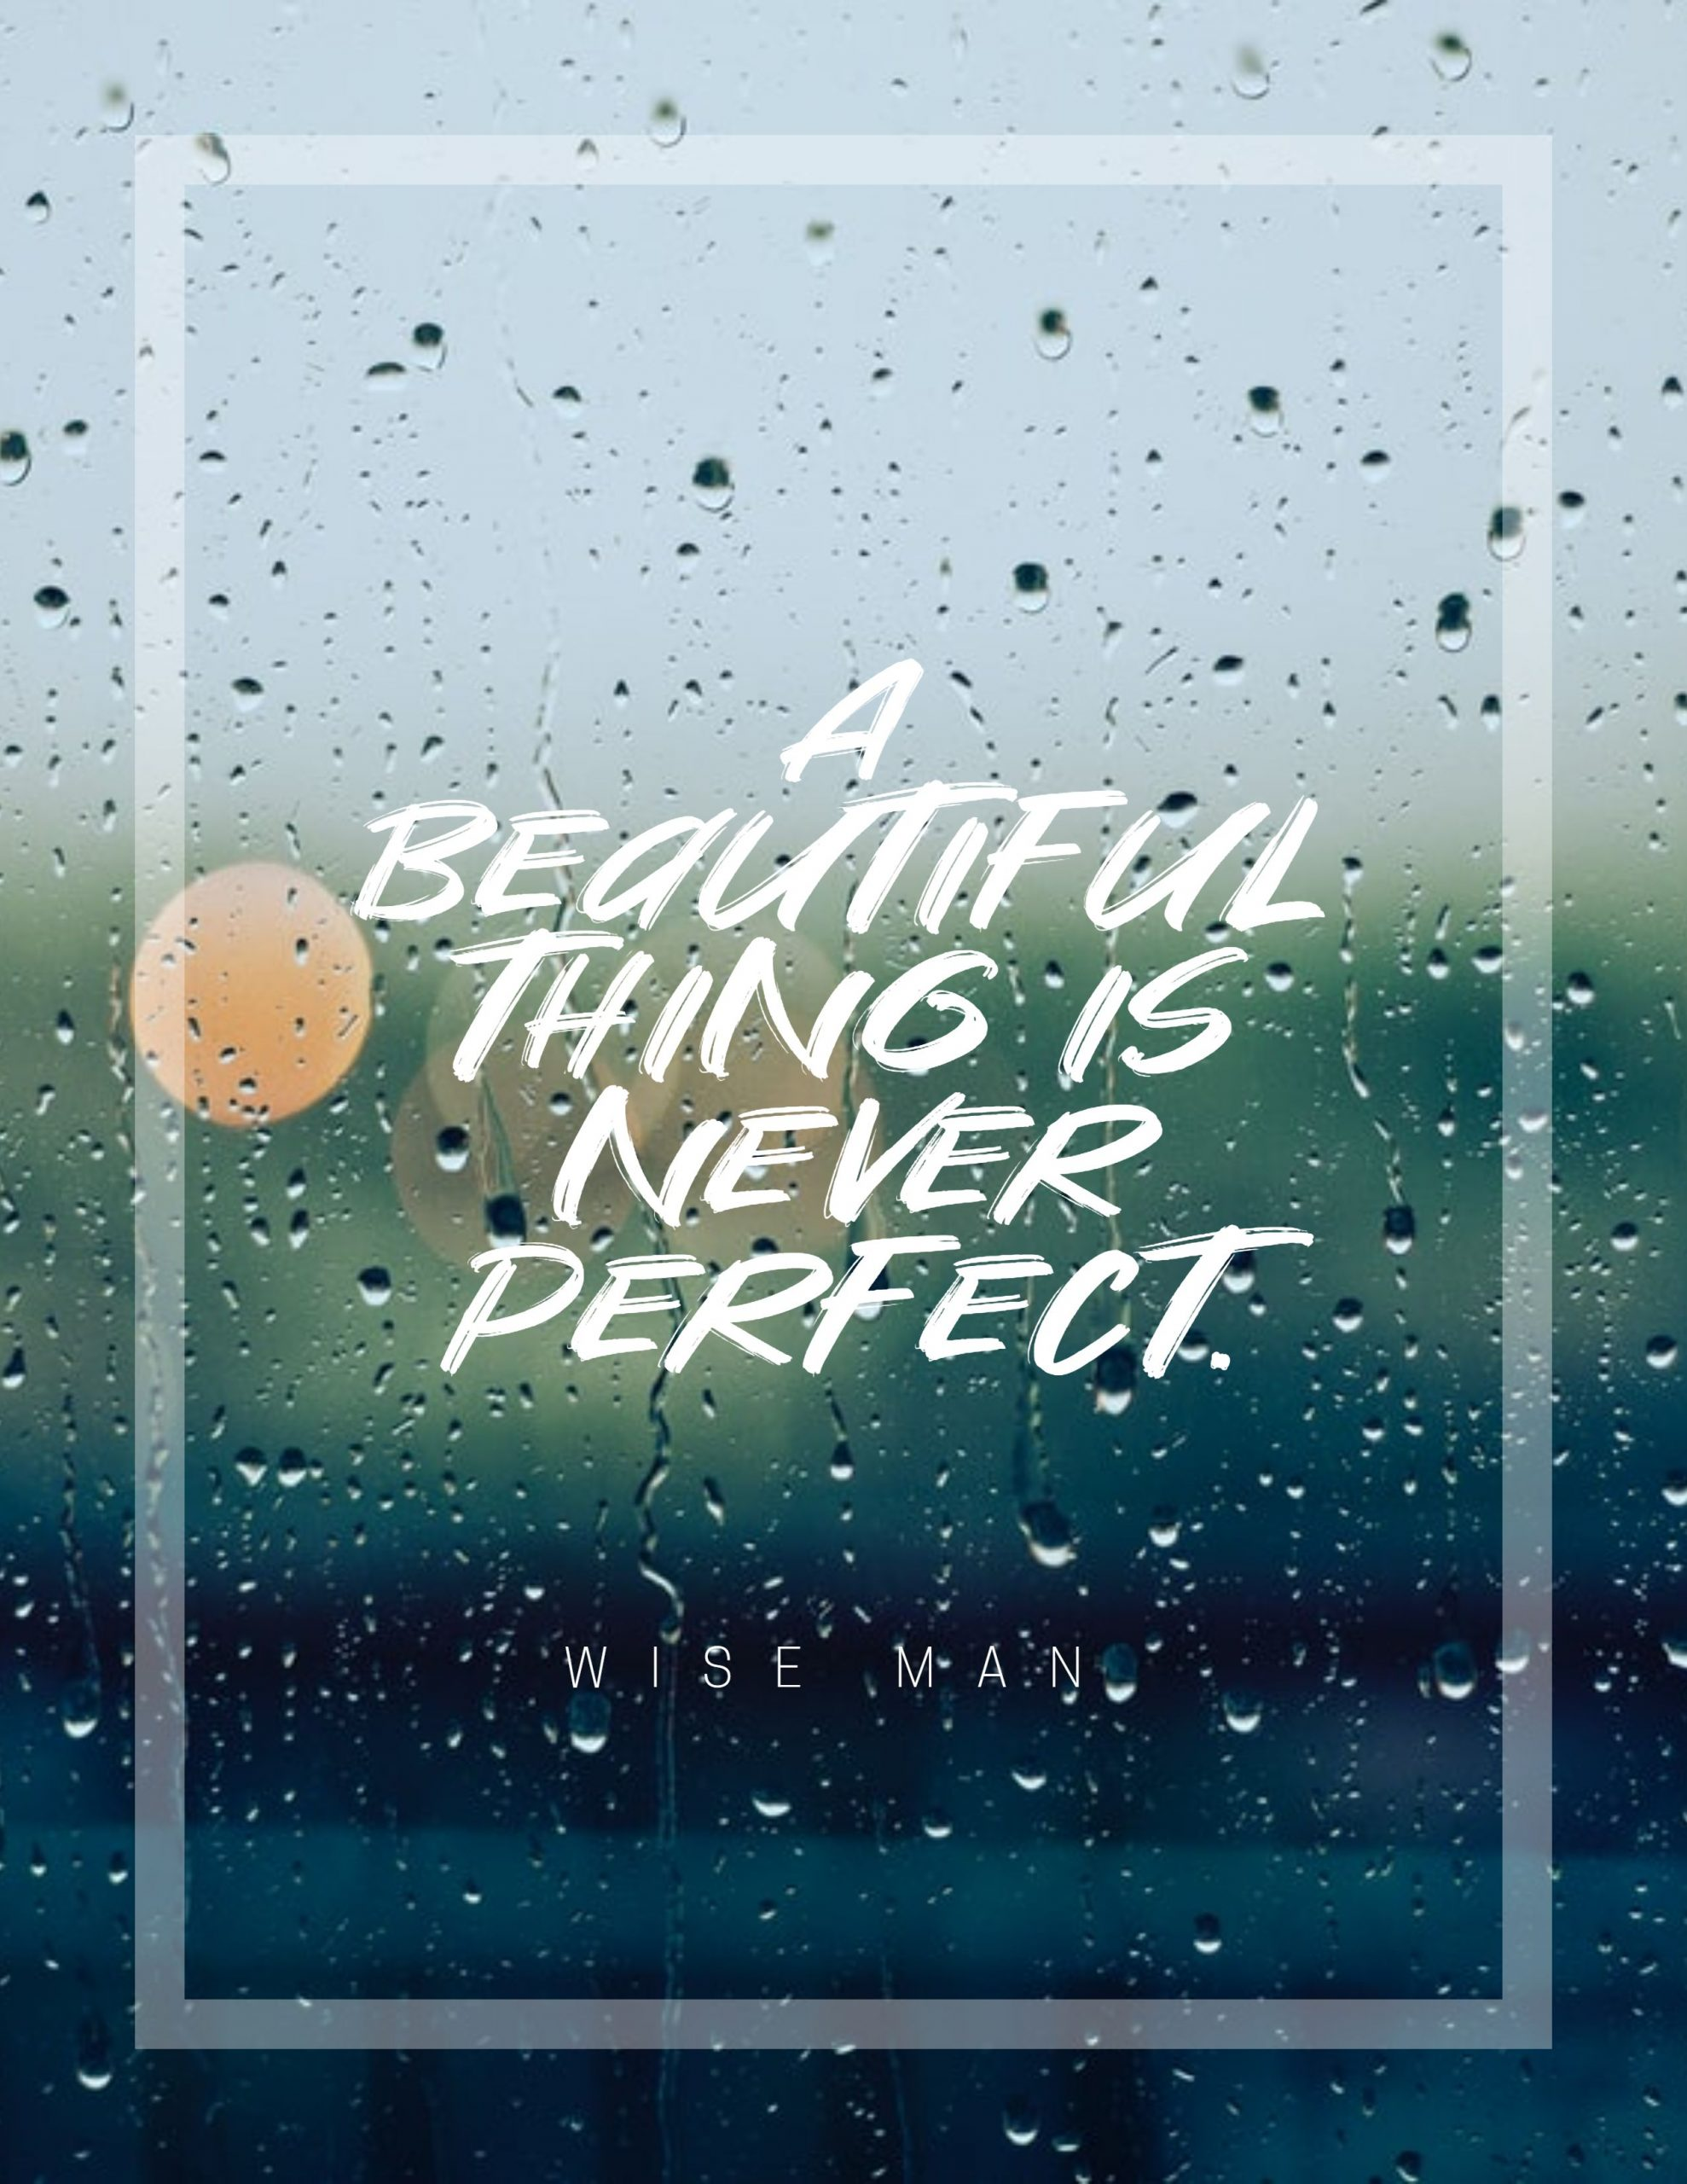 Quotes image of A beautiful thing is never perfect.